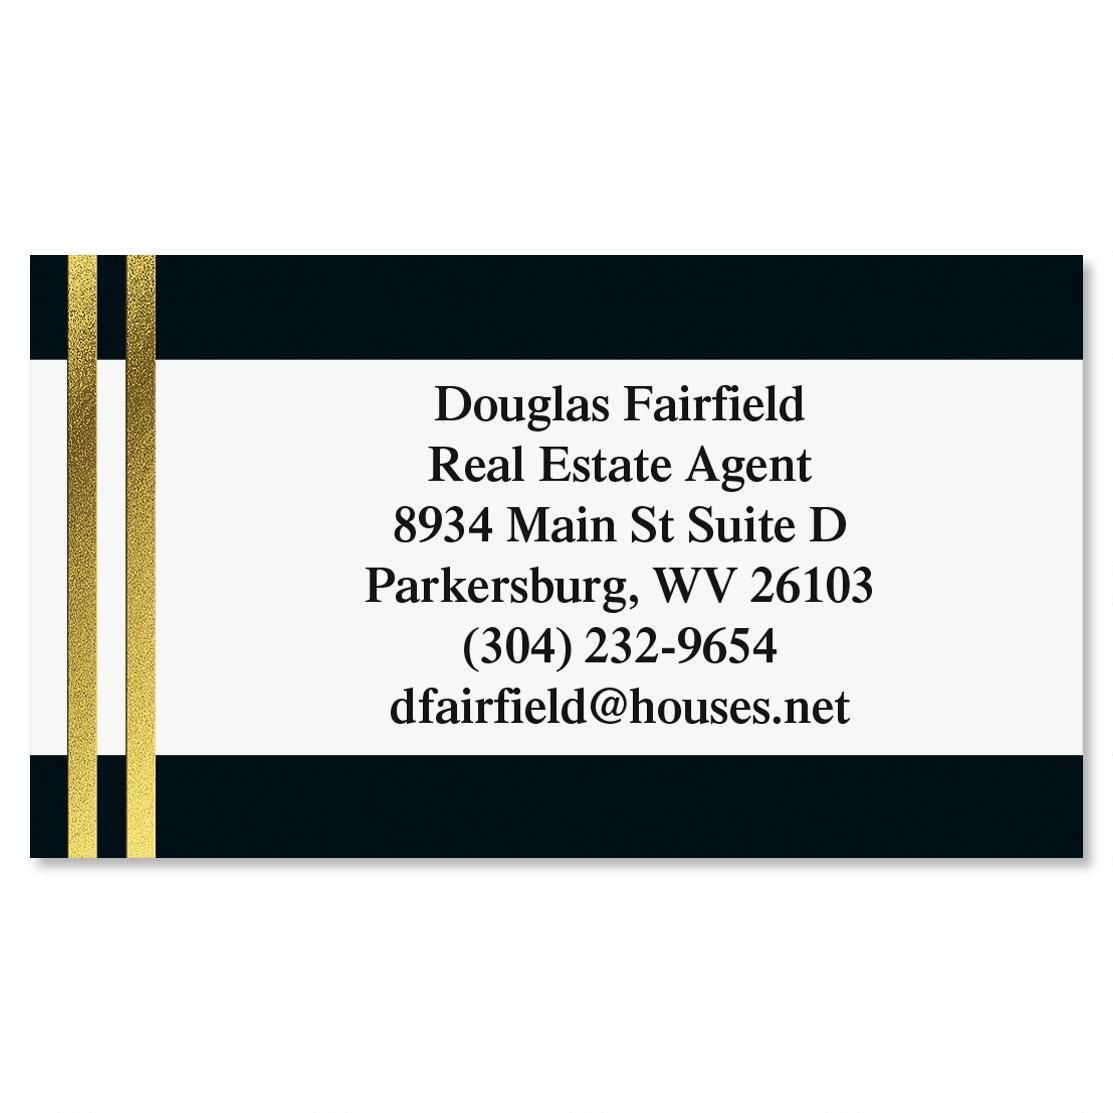 Black & Double Gold Foil Calling Cards